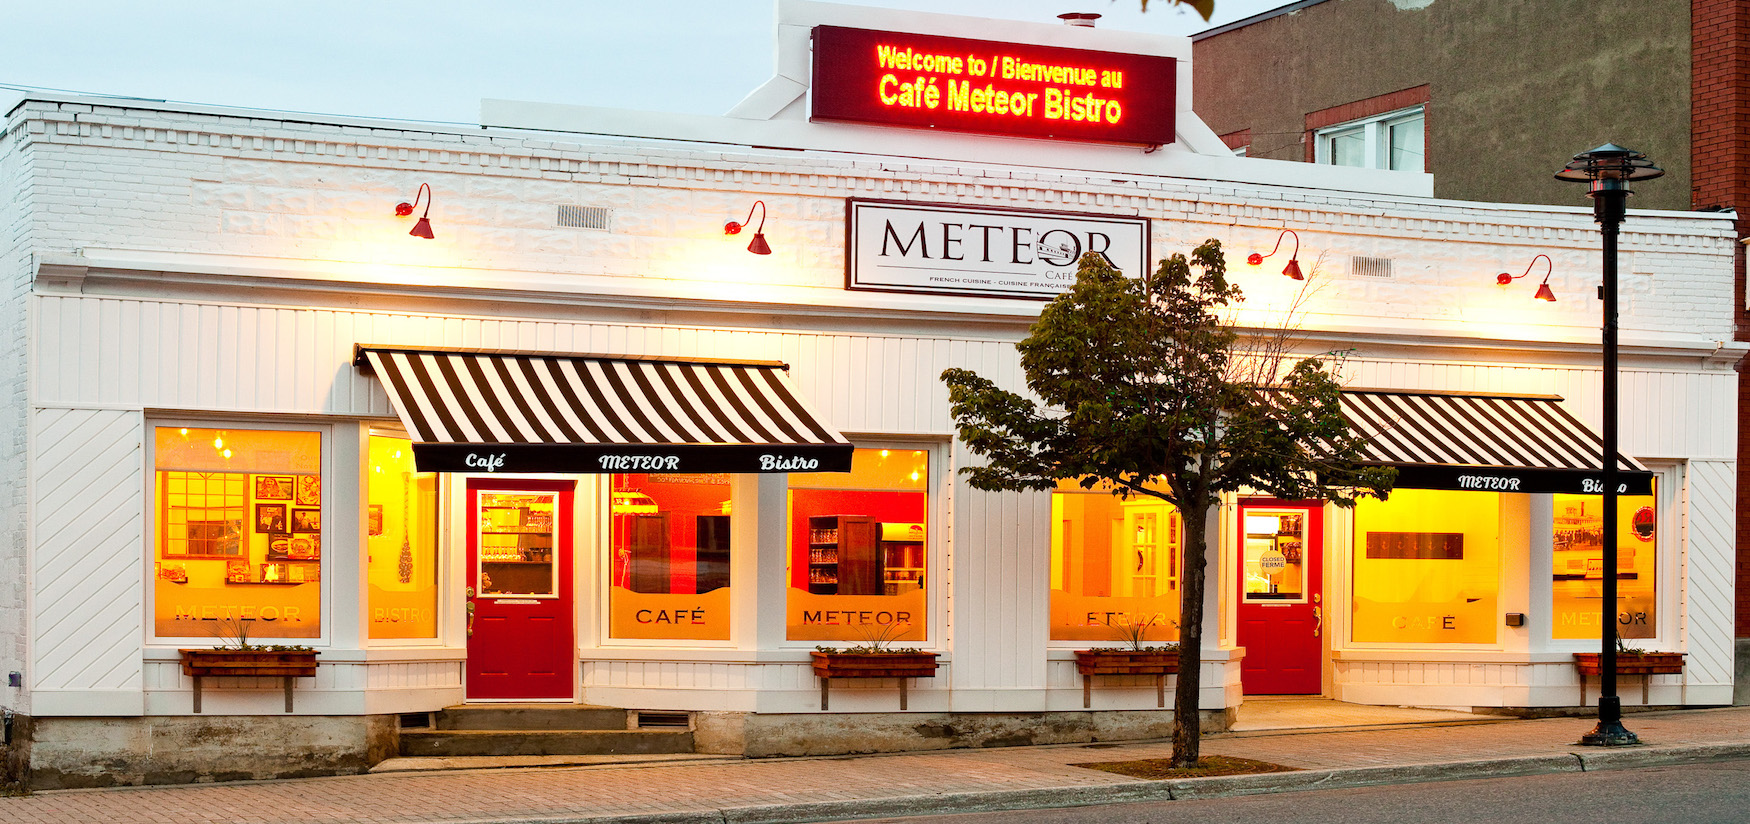 Cafe MEteor Bistro located downtown Haileybury